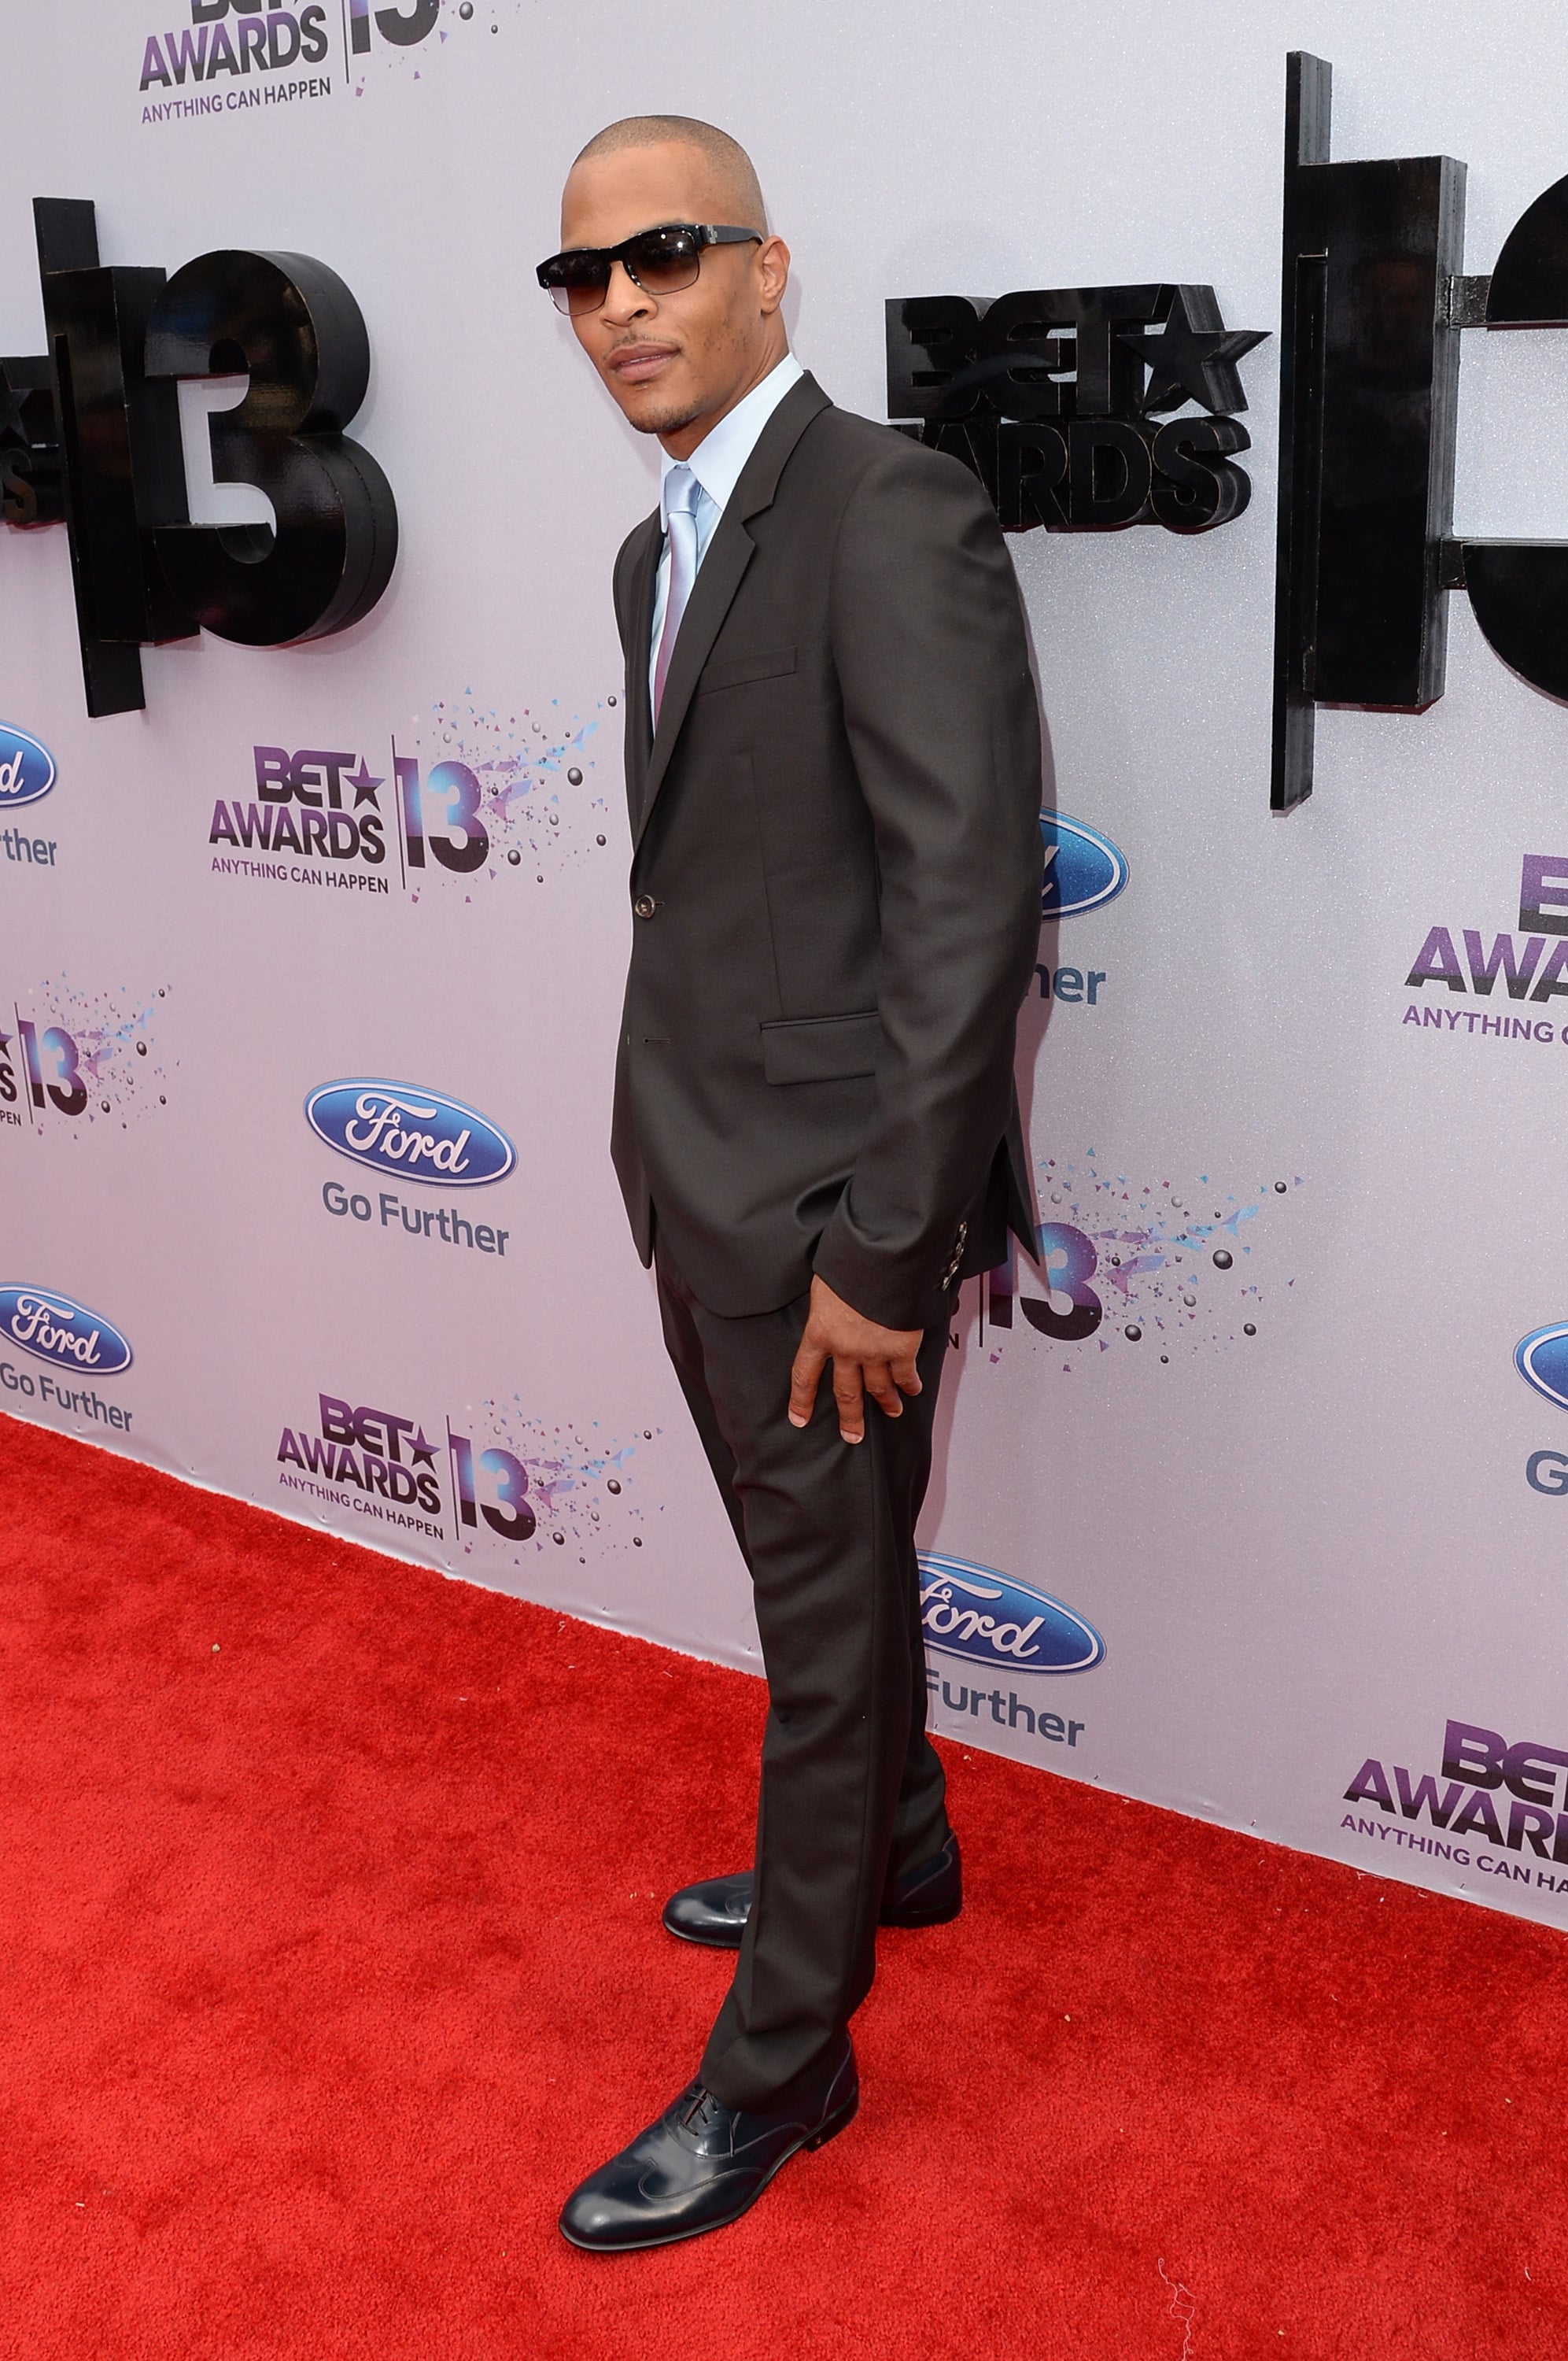 T.I. looked dapper in a suit.